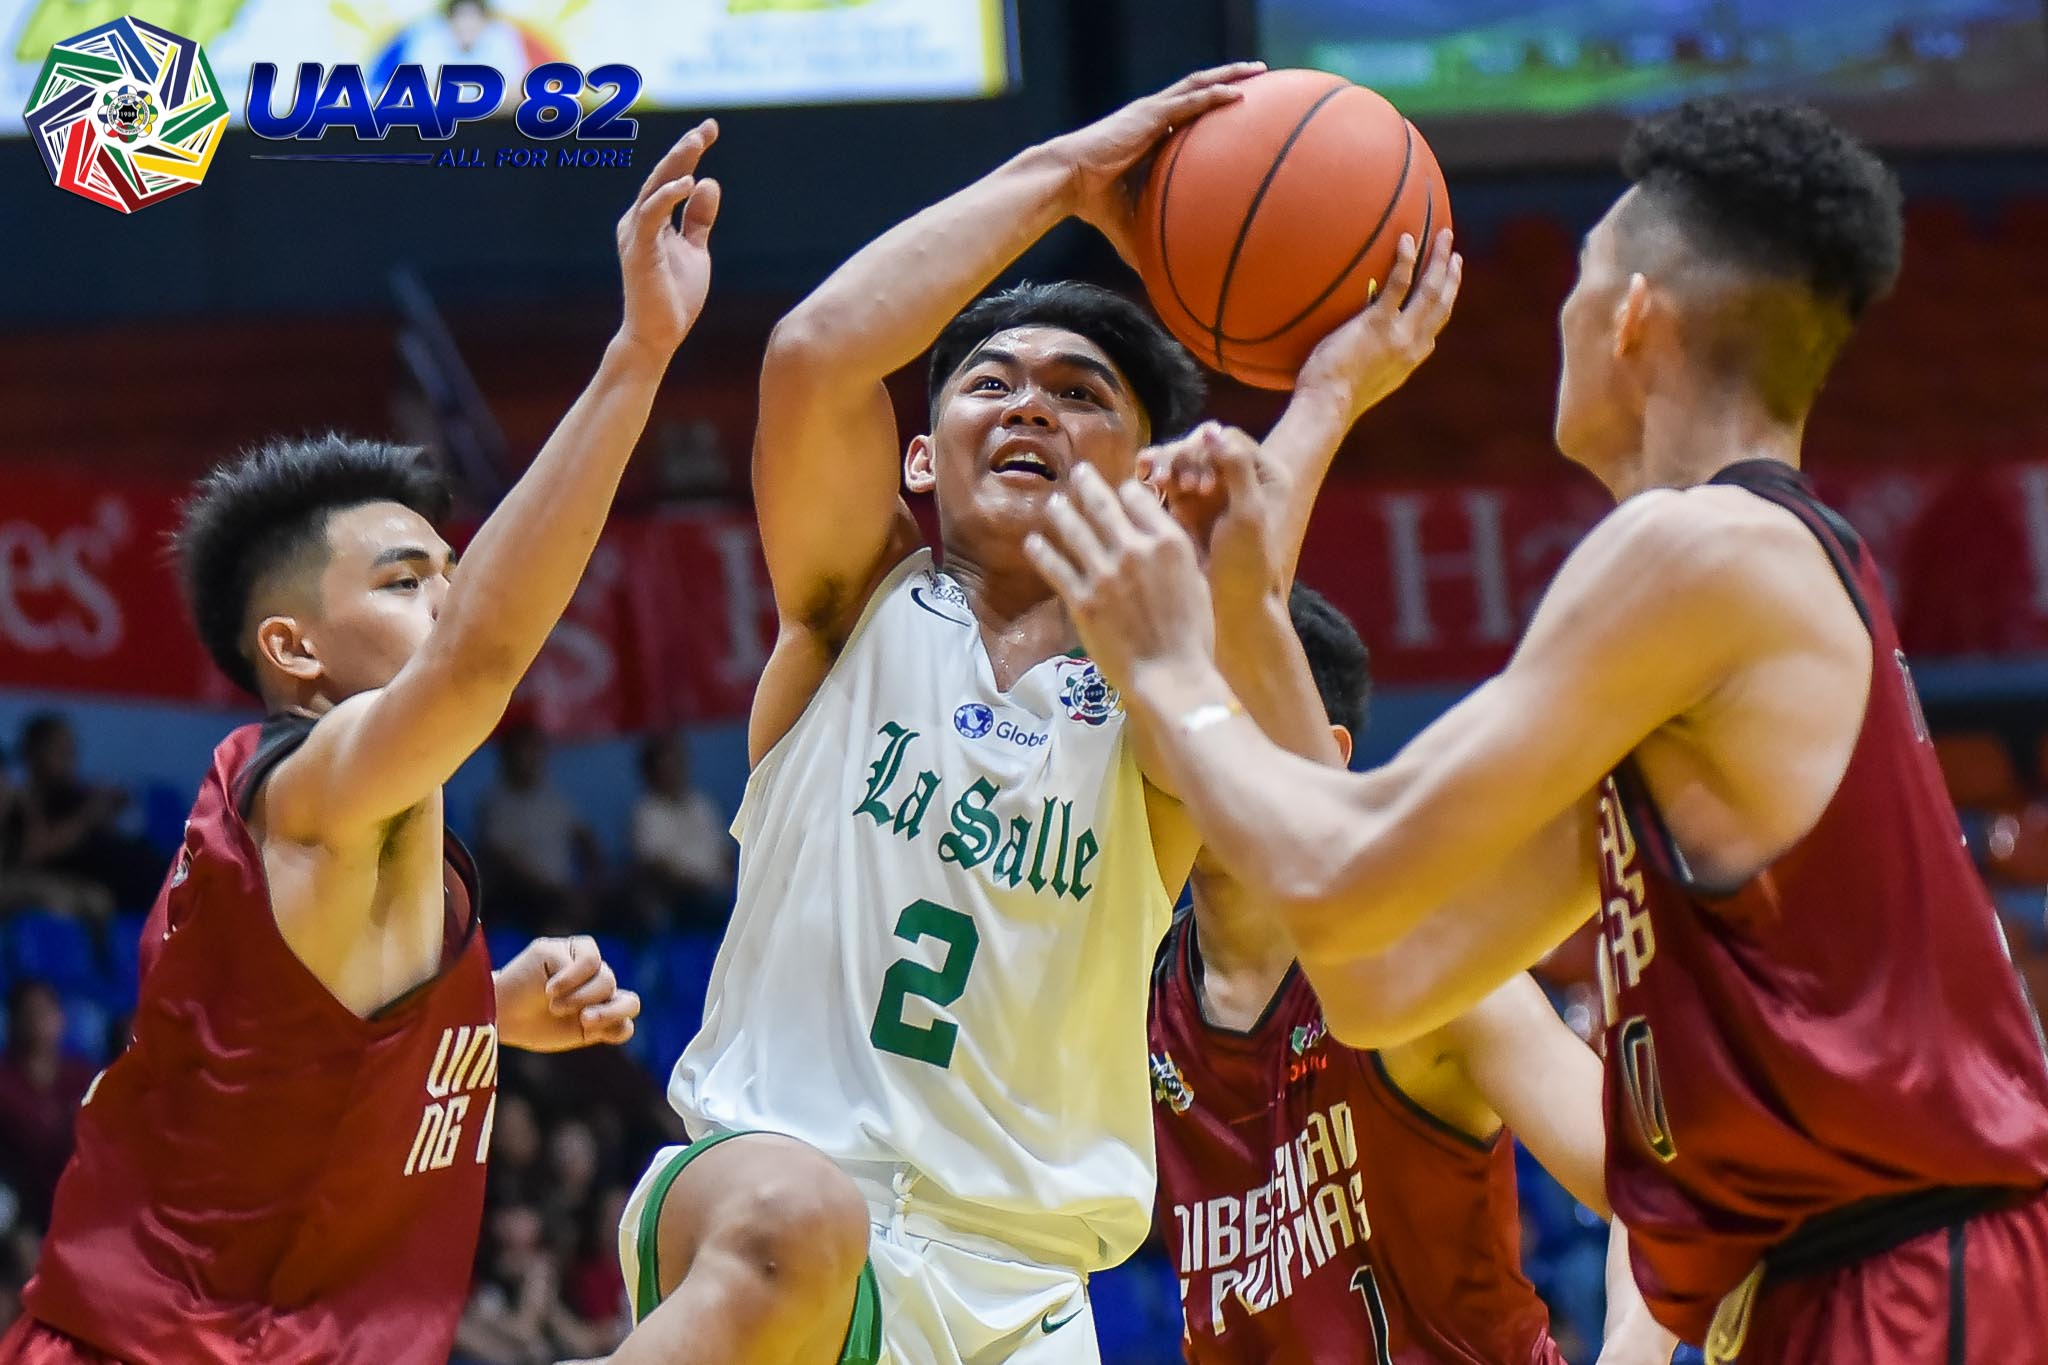 UAAP-Jrs-DLSZ-vs.-UPIS-Baclaan-9770 NU Bullpups weather Padrigao's 30-point explosion to go to 8-0 ADMU AdU Basketball DLSU FEU News NU UAAP UE UP UST  - philippine sports news